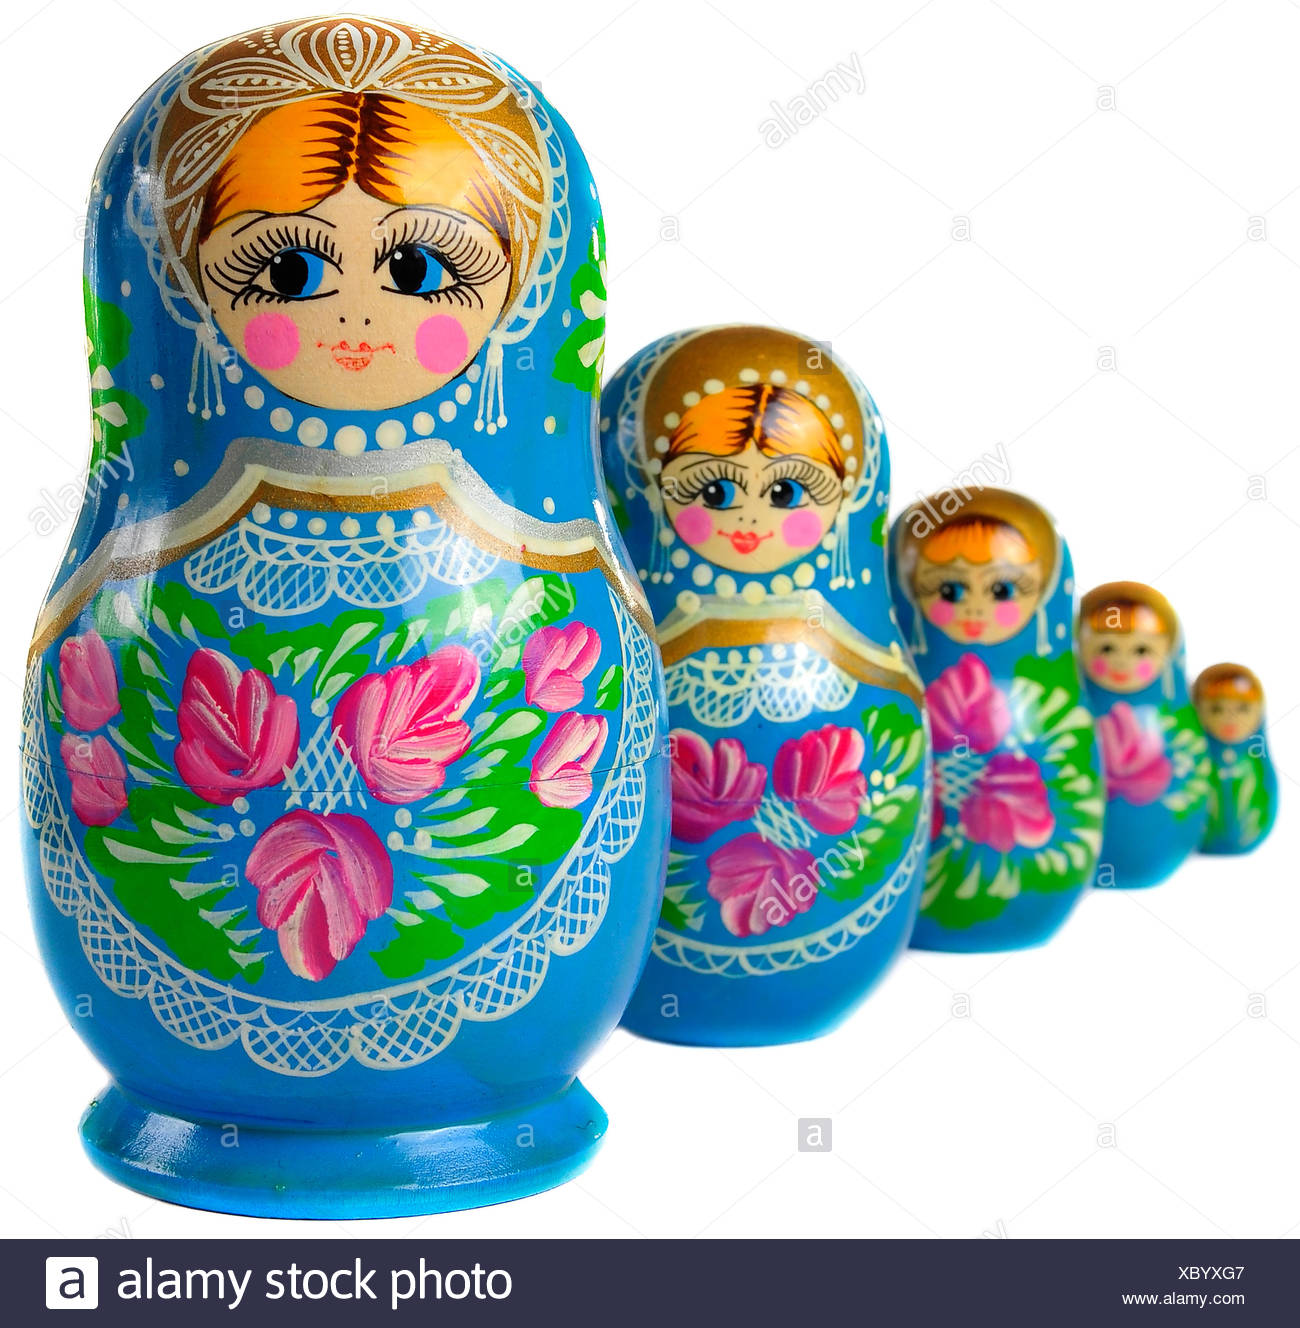 isolated wood playful toy offspring doll mother mom ma mommy growth pattern souvenir collection set figurine nested slavic - Stock Image